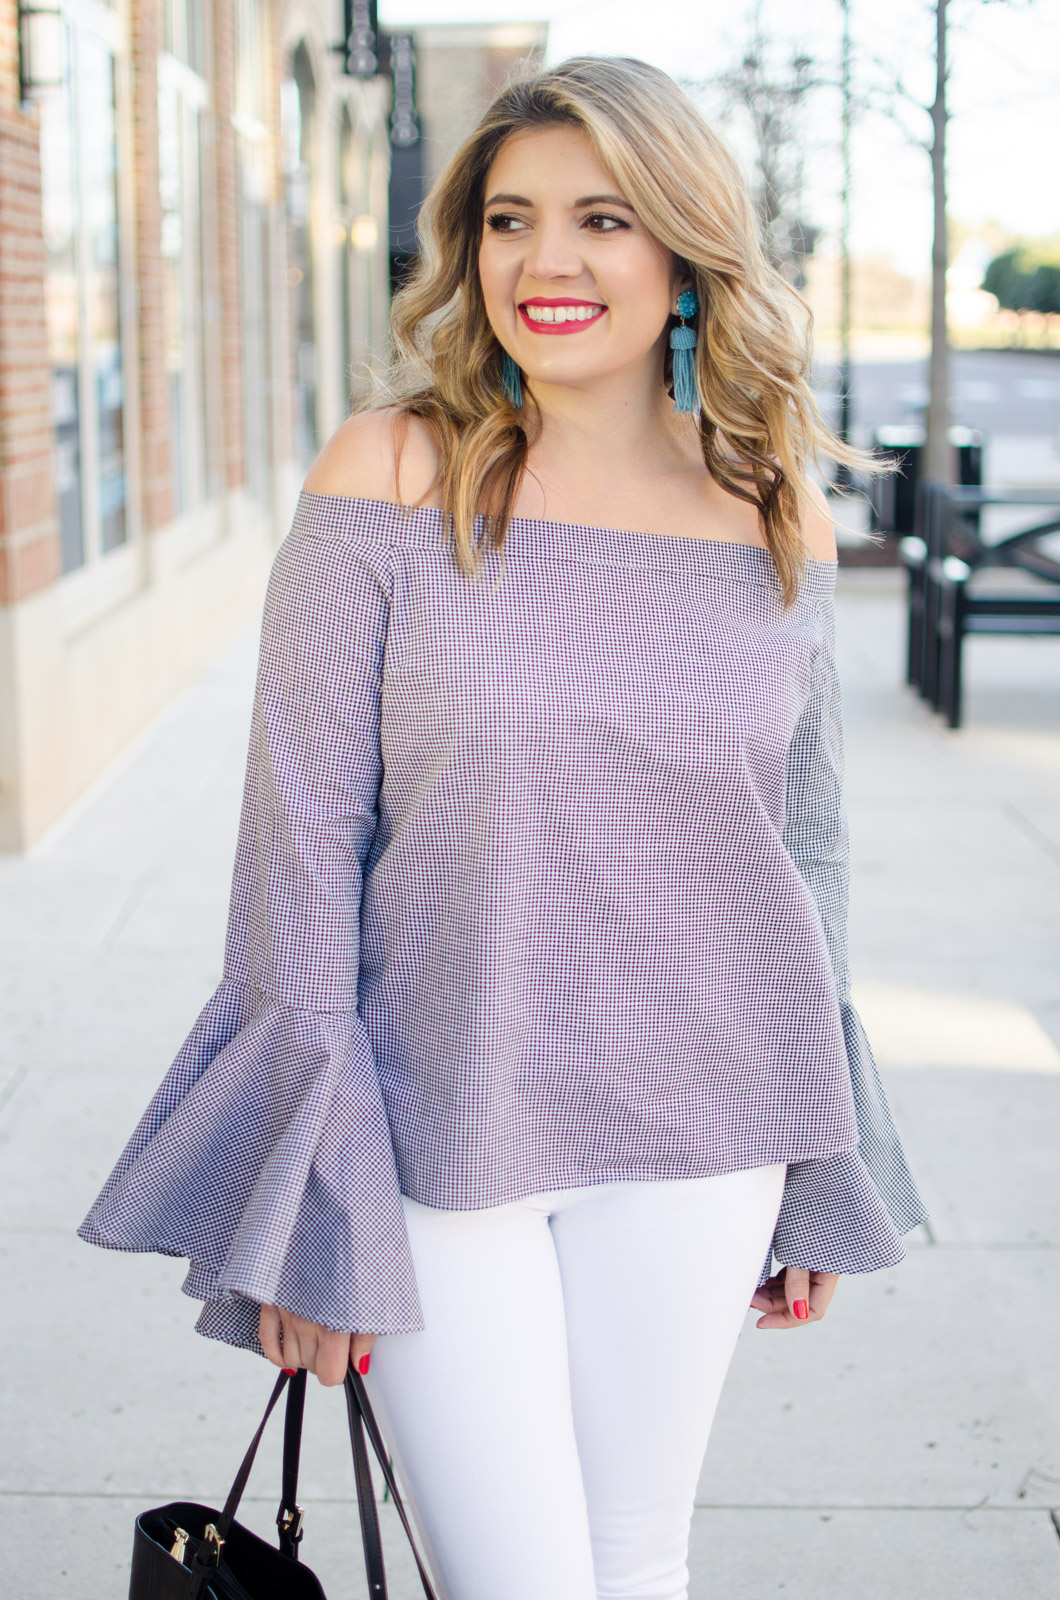 bell sleeve top spring outfit. Click through for more trendy Spring outfits or to shop this look! www.bylaurenm.com